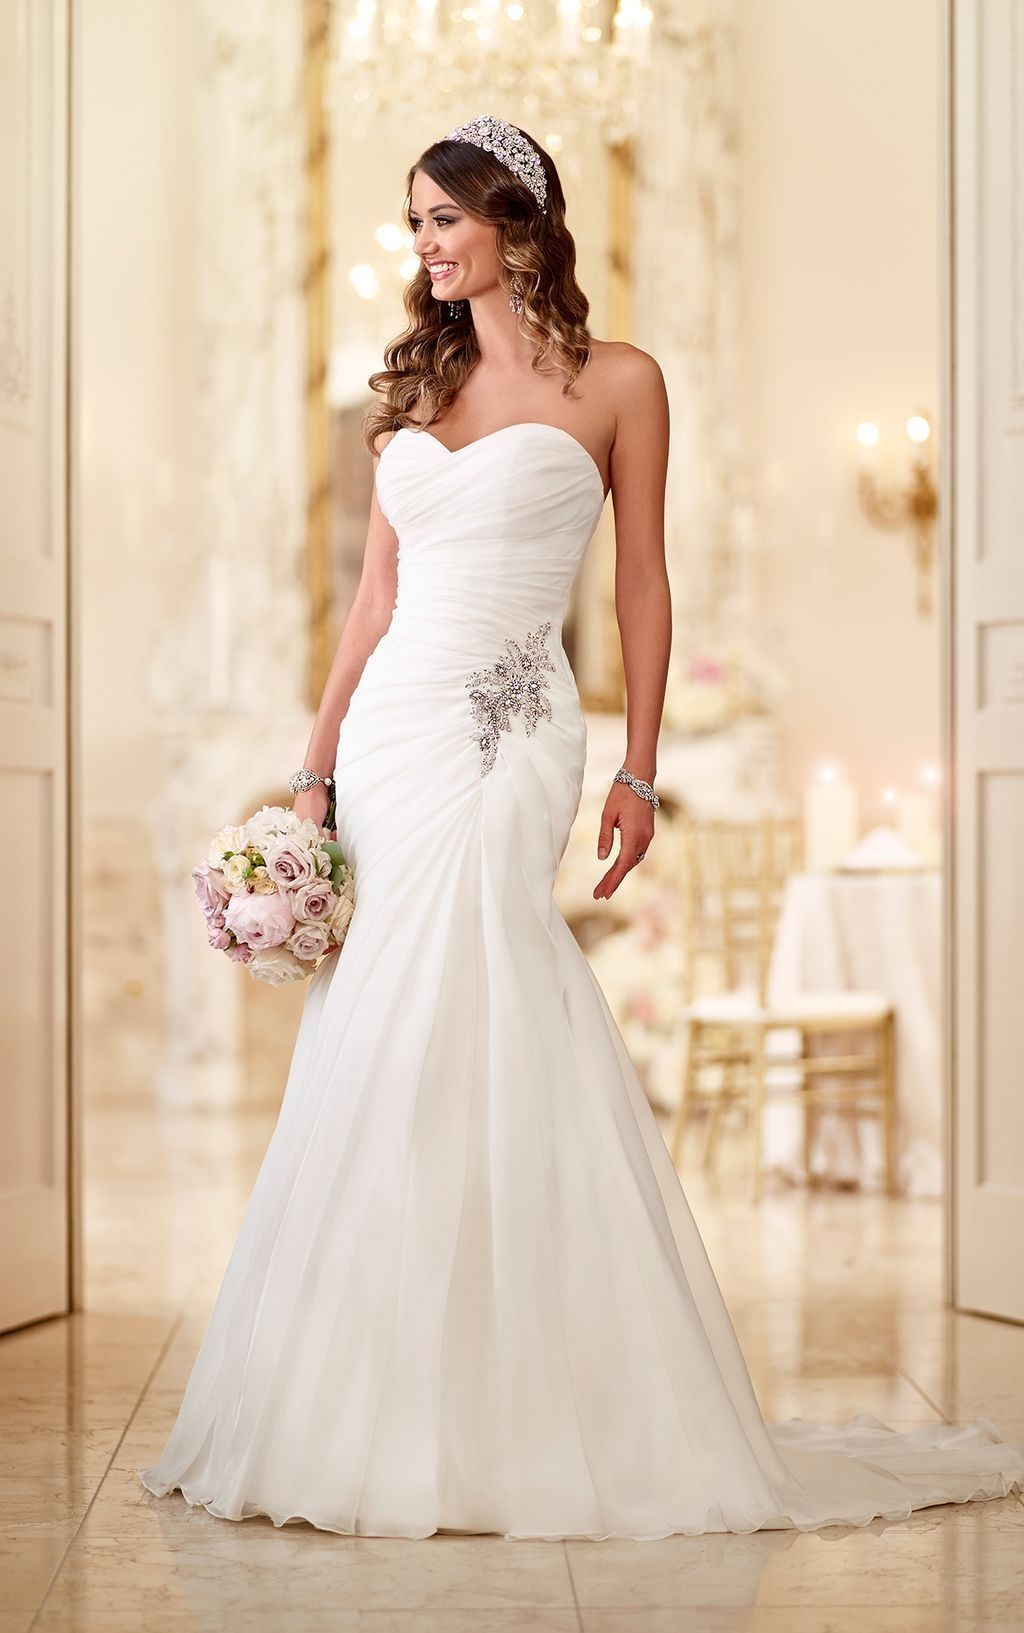 89 Simple but Beautiful Strapless Wedding Gown Ideas Trends 2017 ...